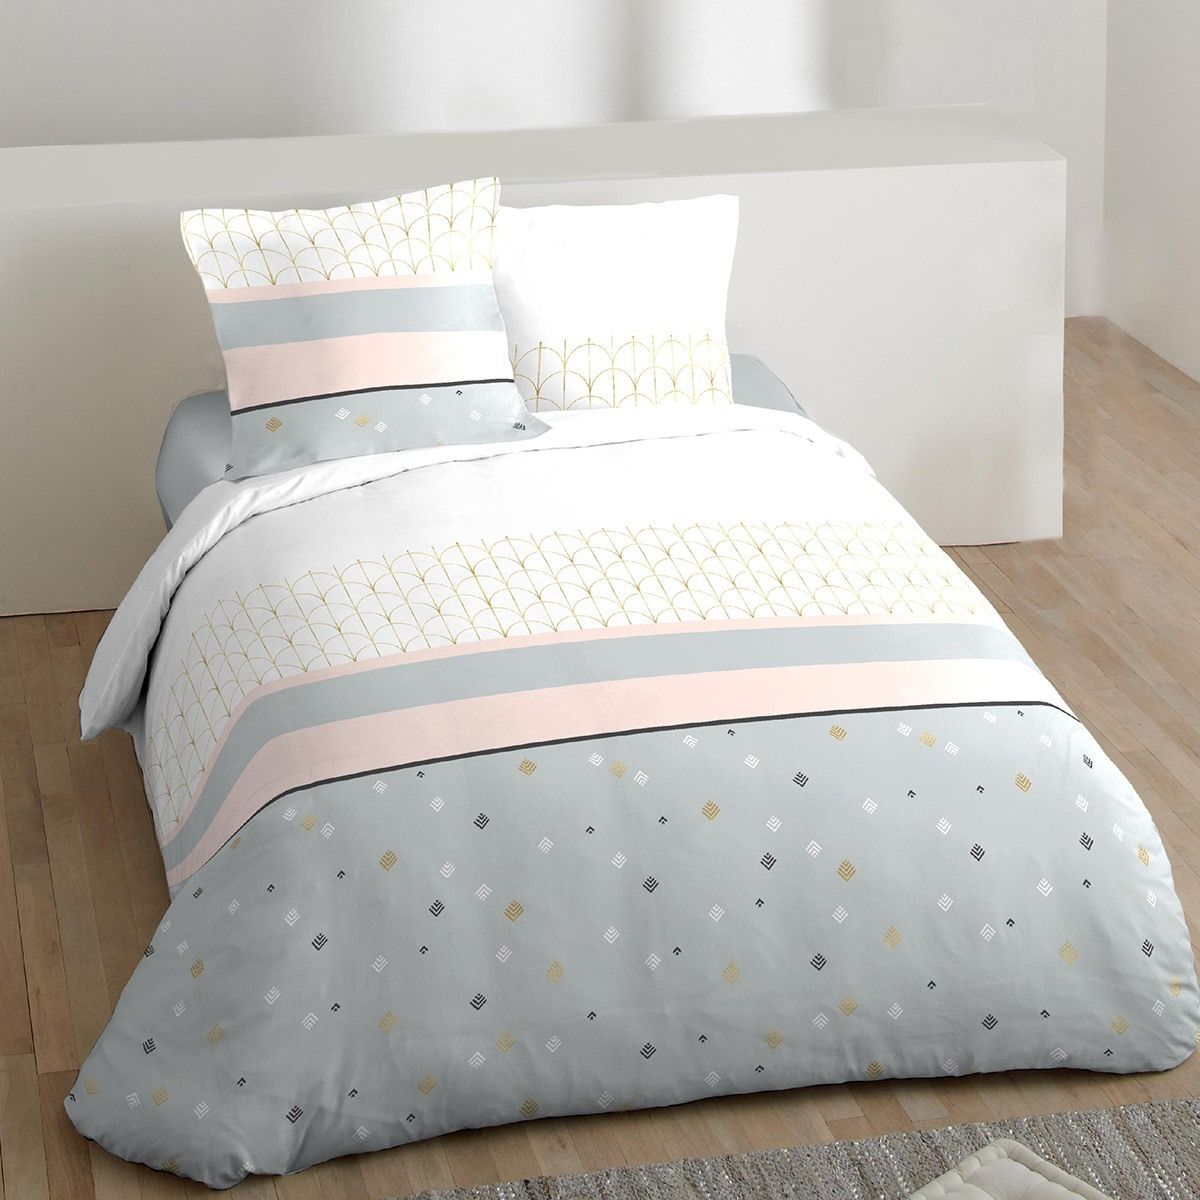 Housse De Couette Klin Or 2 Taies 100 Coton 57 Fils Cama Decoracao